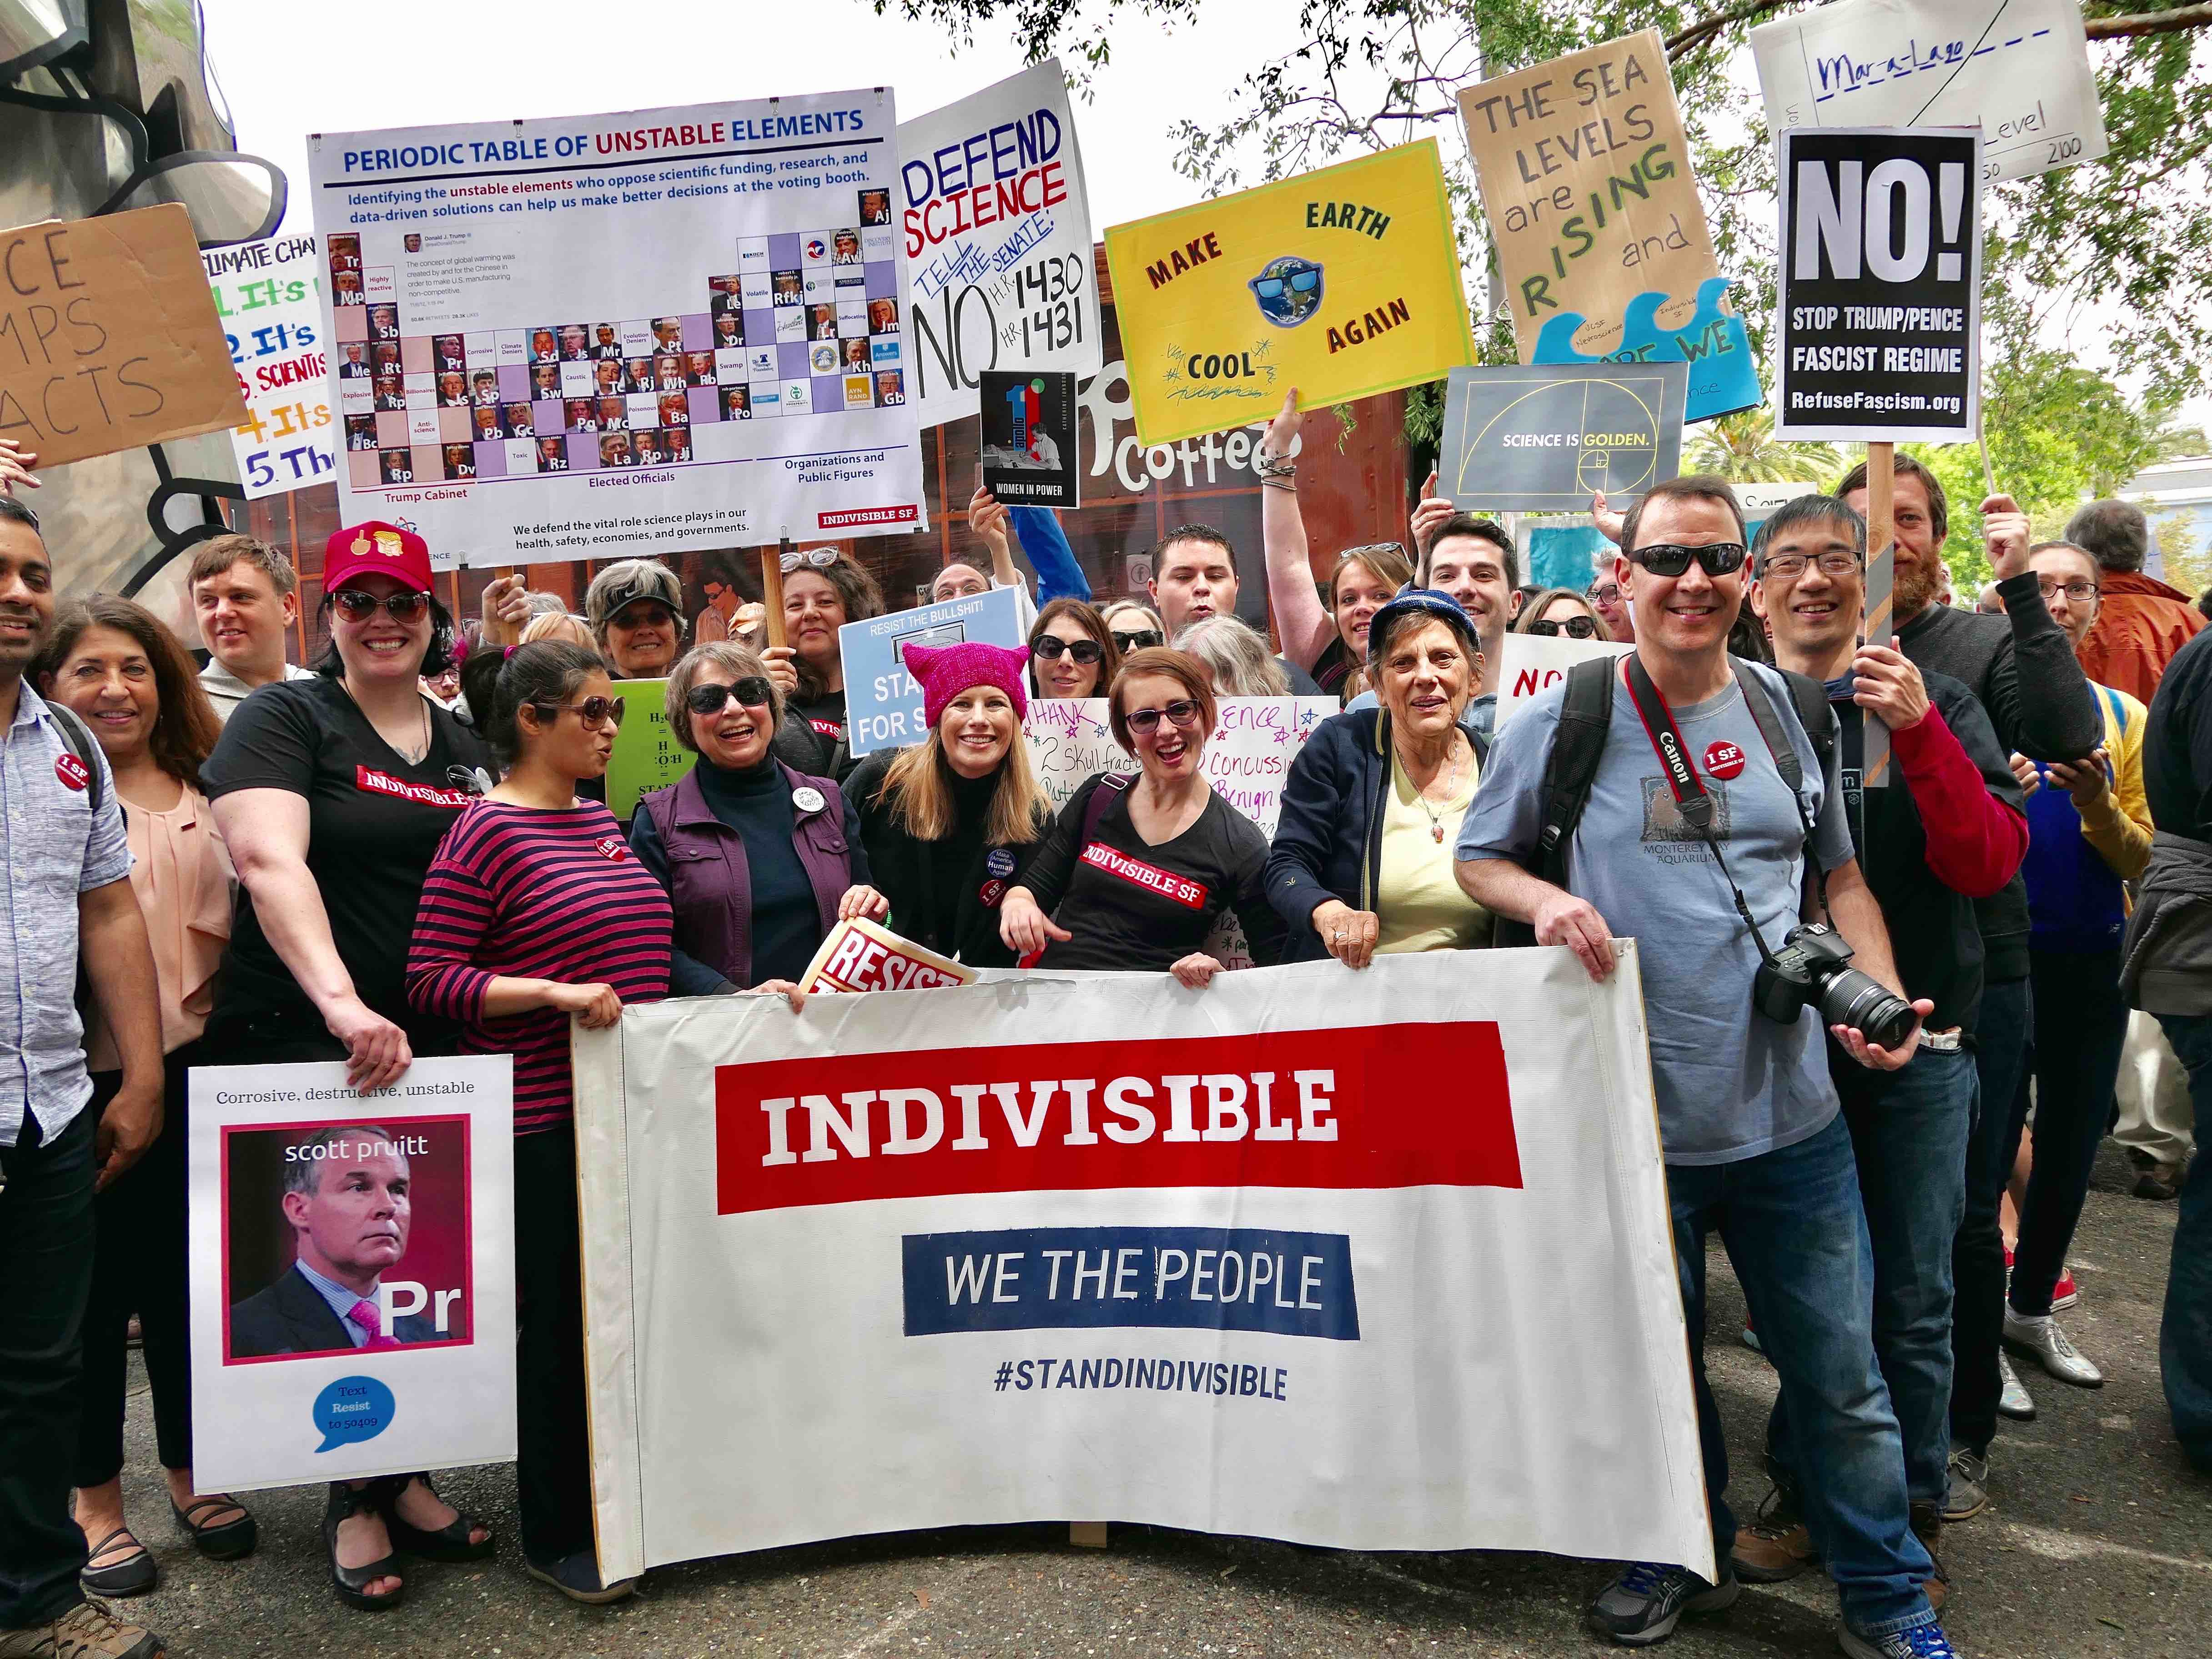 Indivisible March To Honor Heather Heyer, Resist Trump Agenda